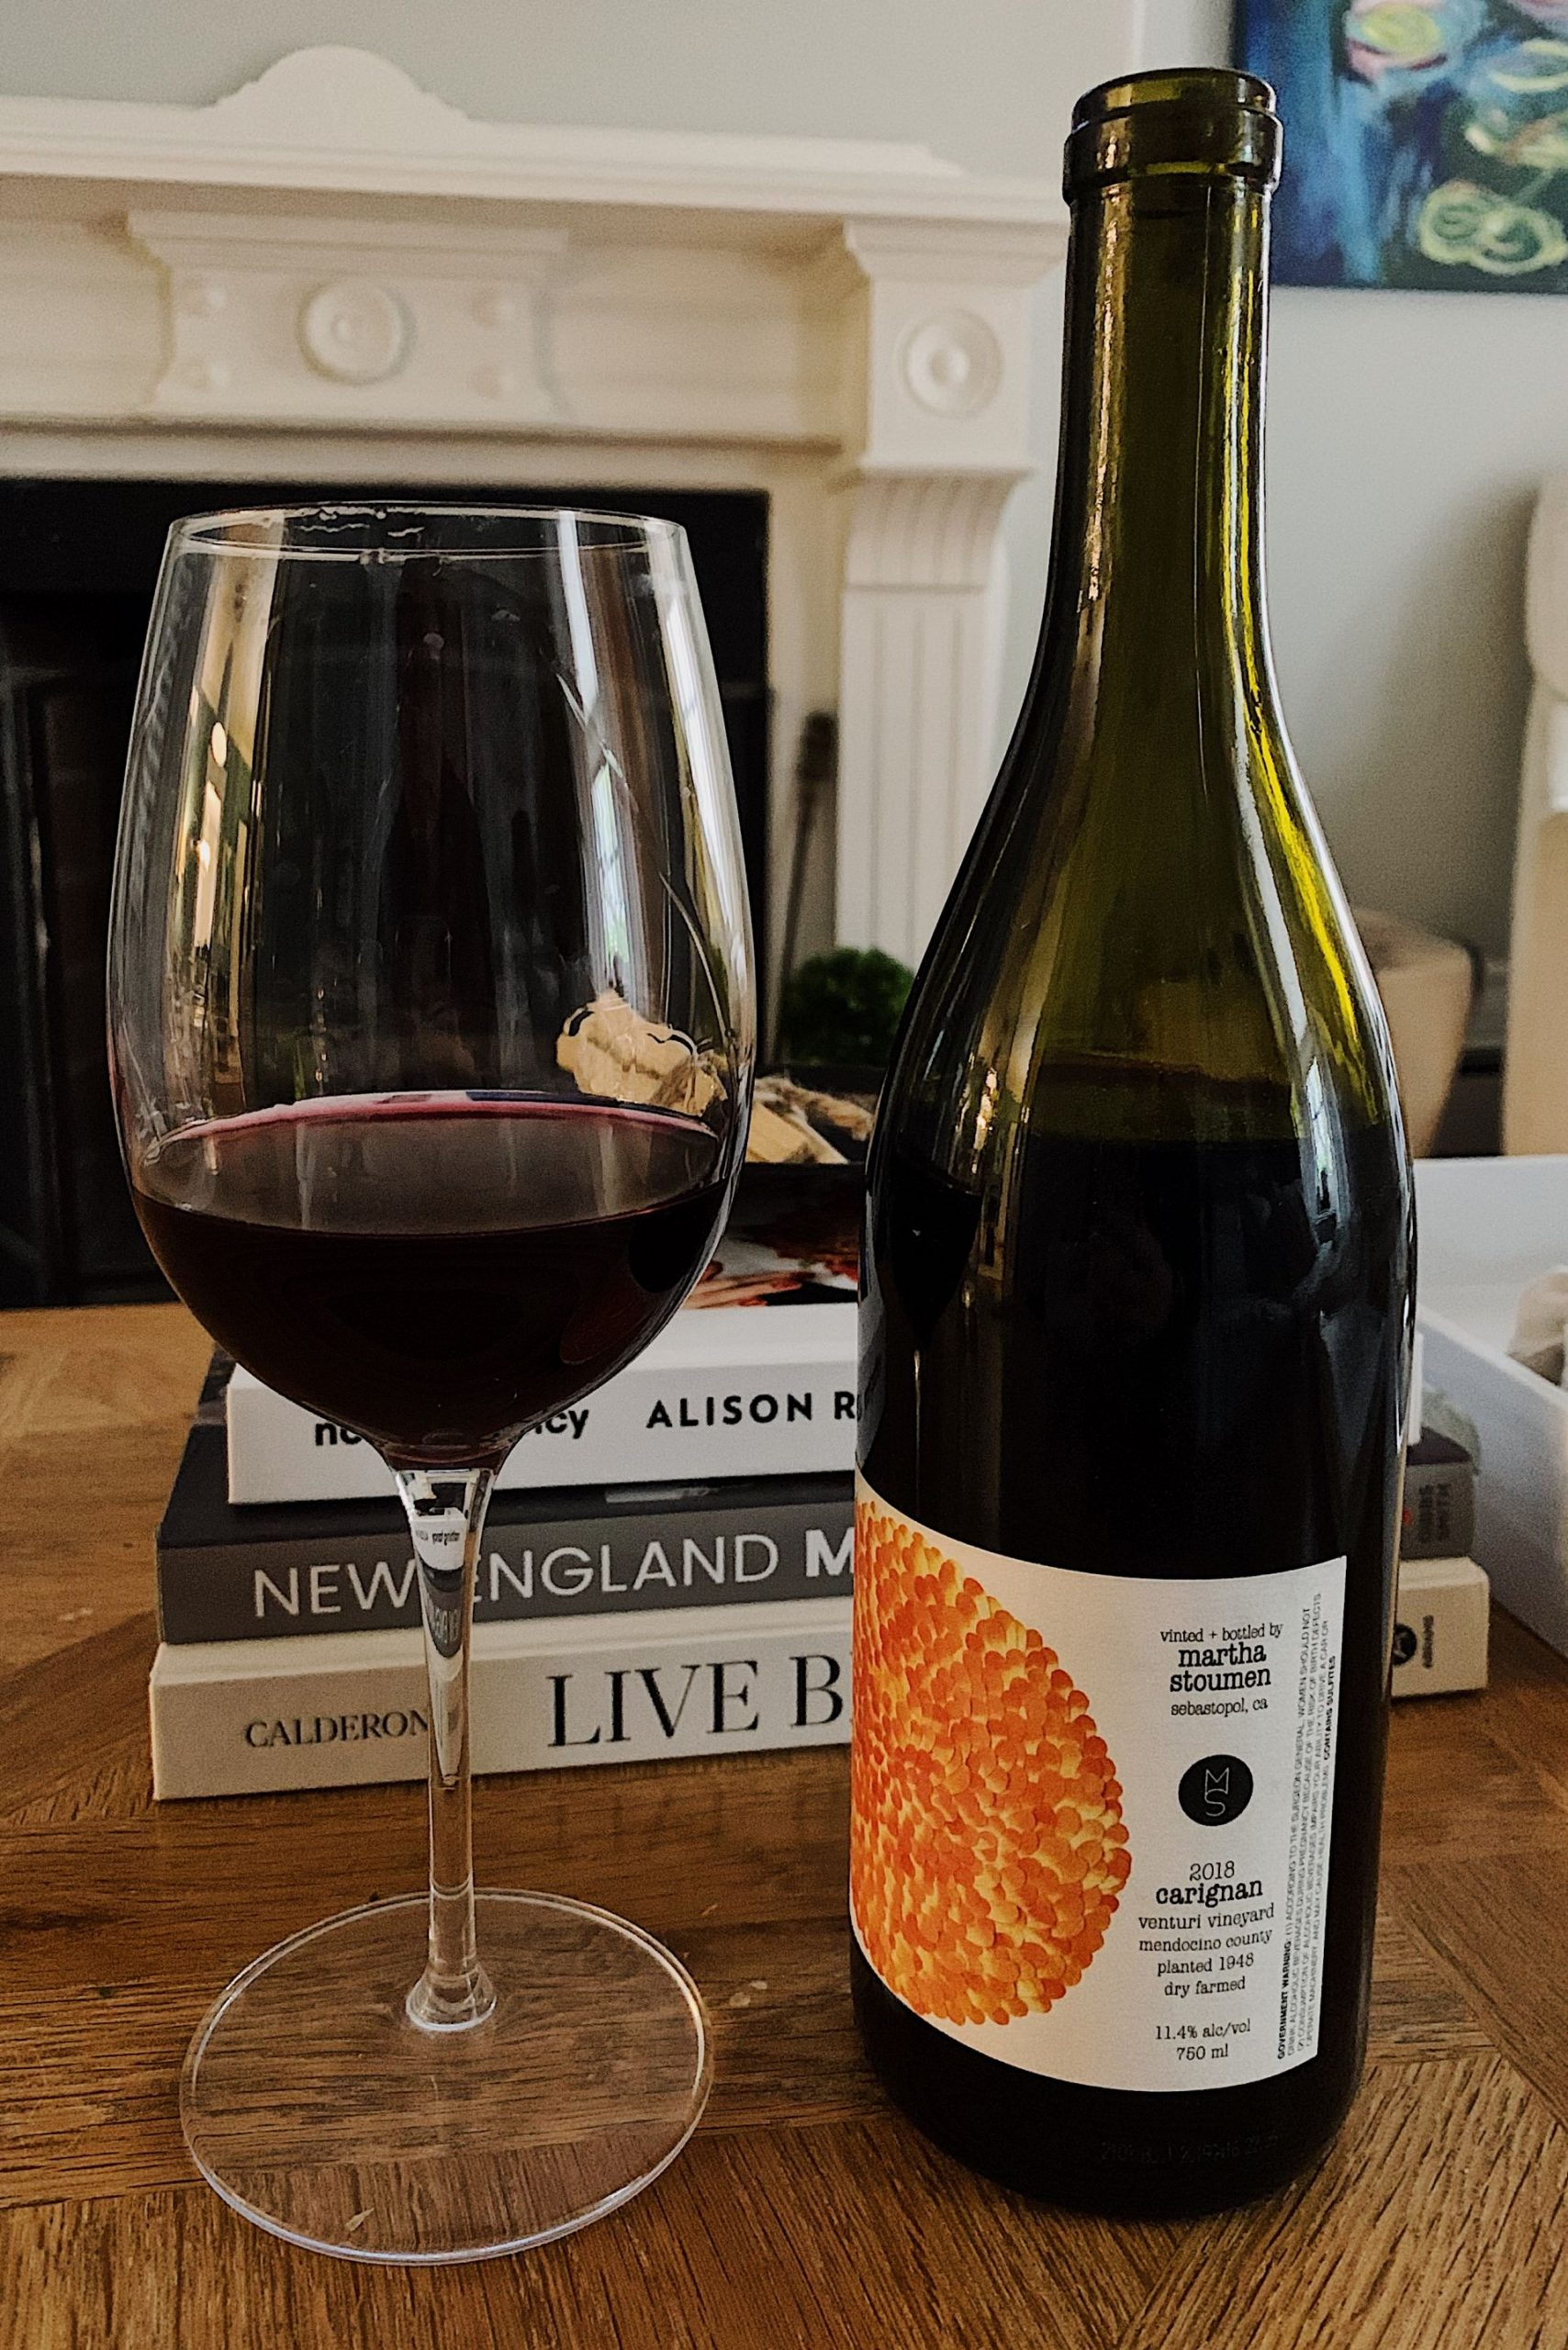 Martha Stoumen Carignan | Food blogger Meaghan Murray shares a post on her favorite wine during Summer 2020 on her blog The Stopover